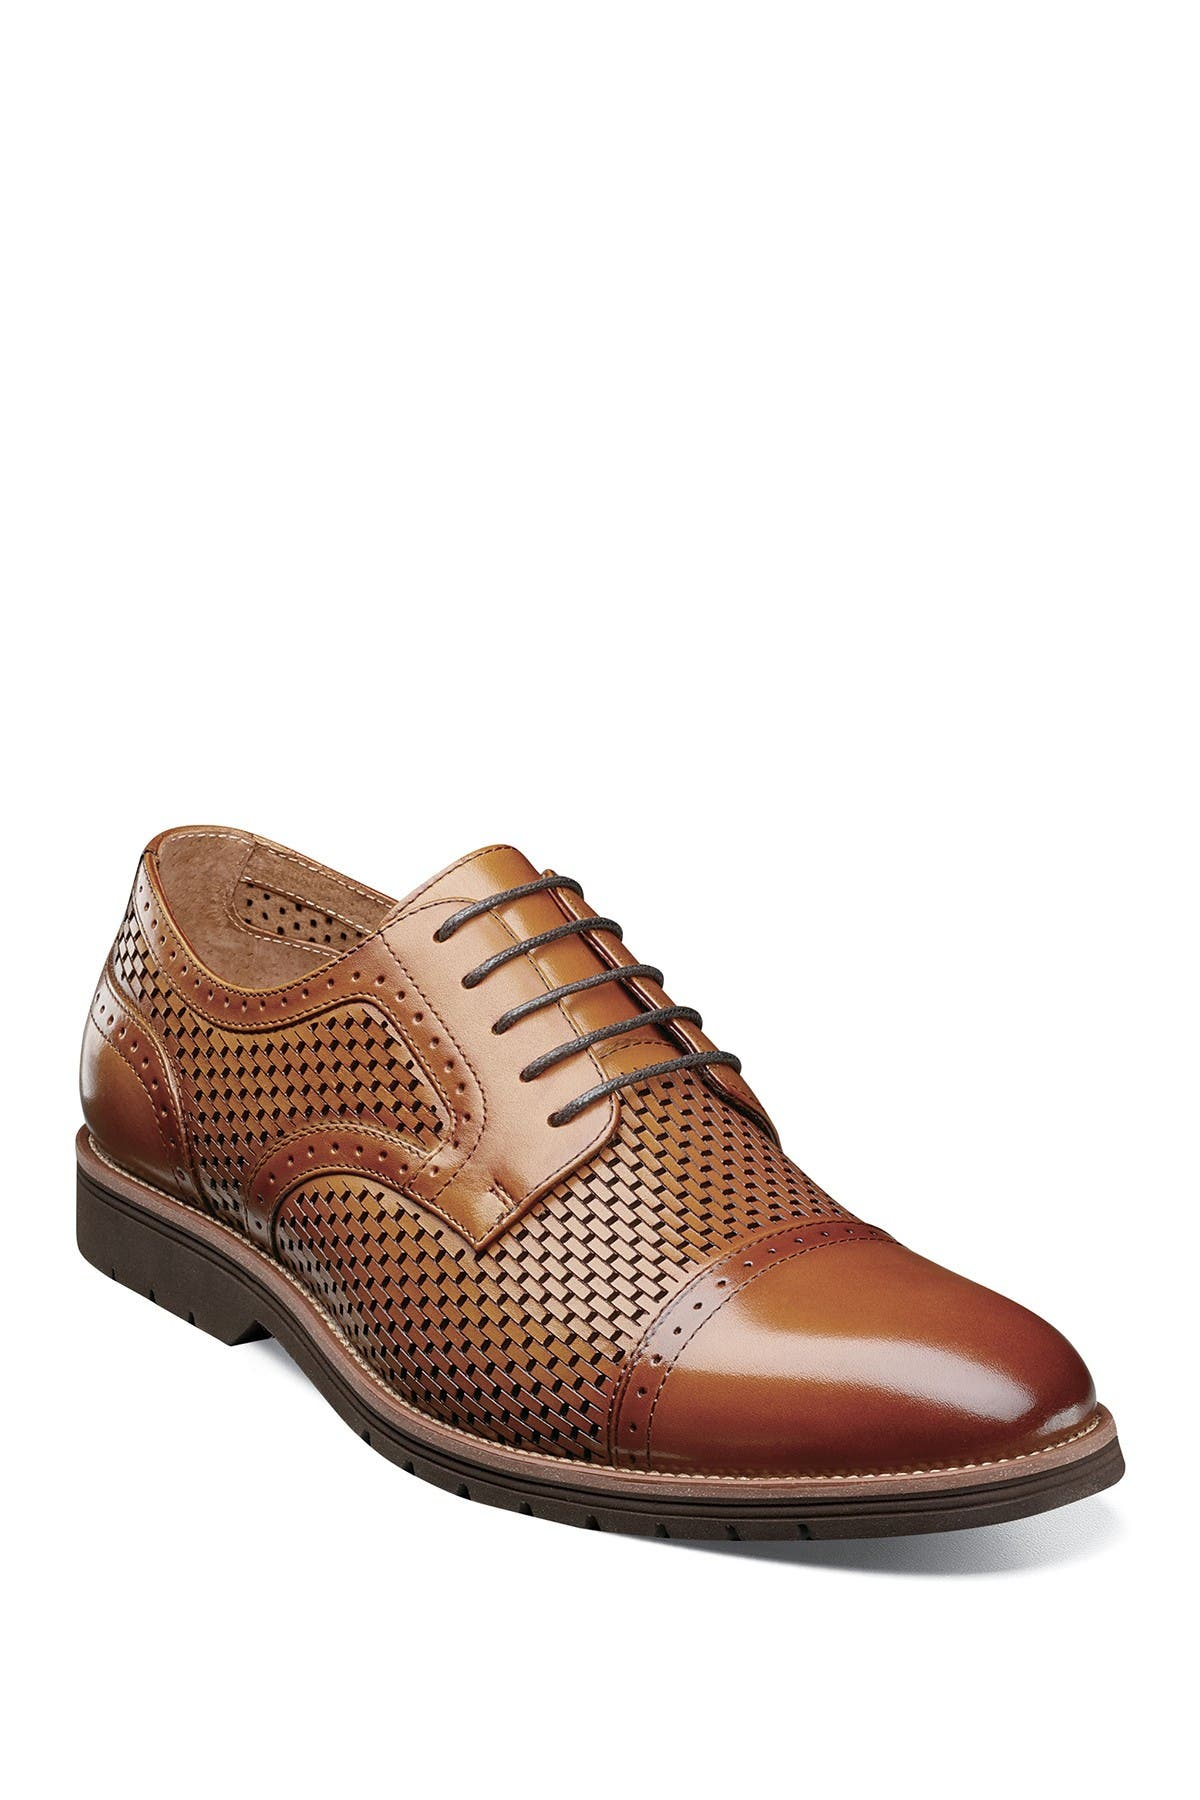 Image of Stacy Adams Ellery Cap Toe Oxford